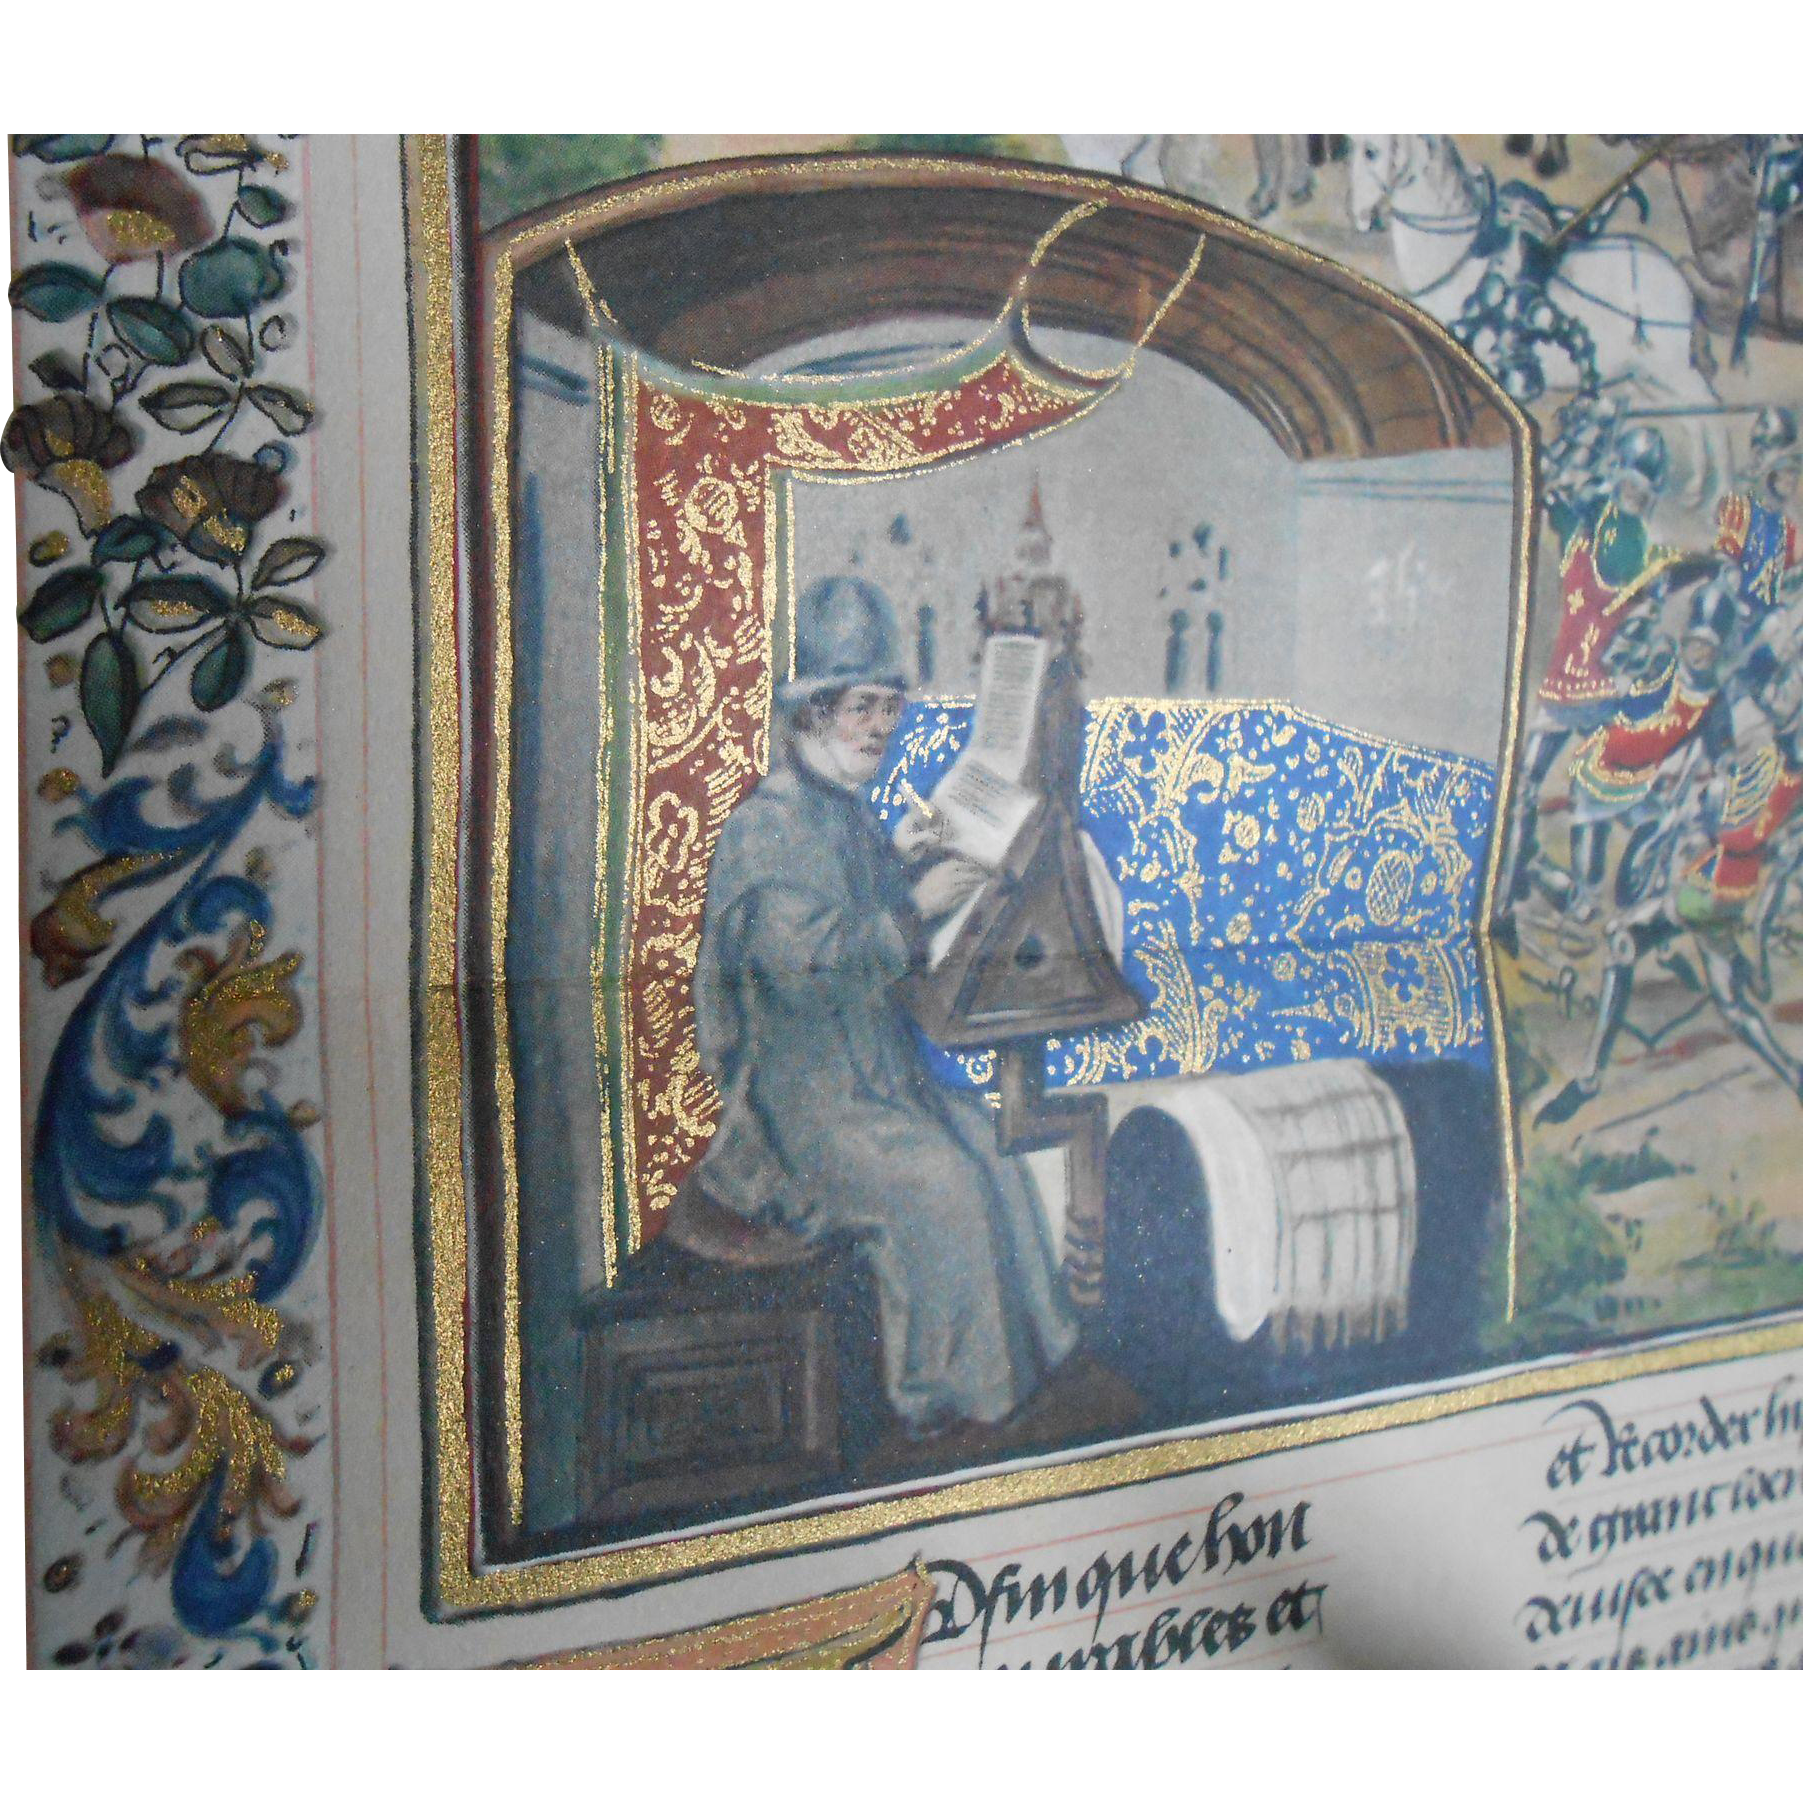 1922 General History of French Literature Book: Illuminated Manuscripts and Author Facsimiles